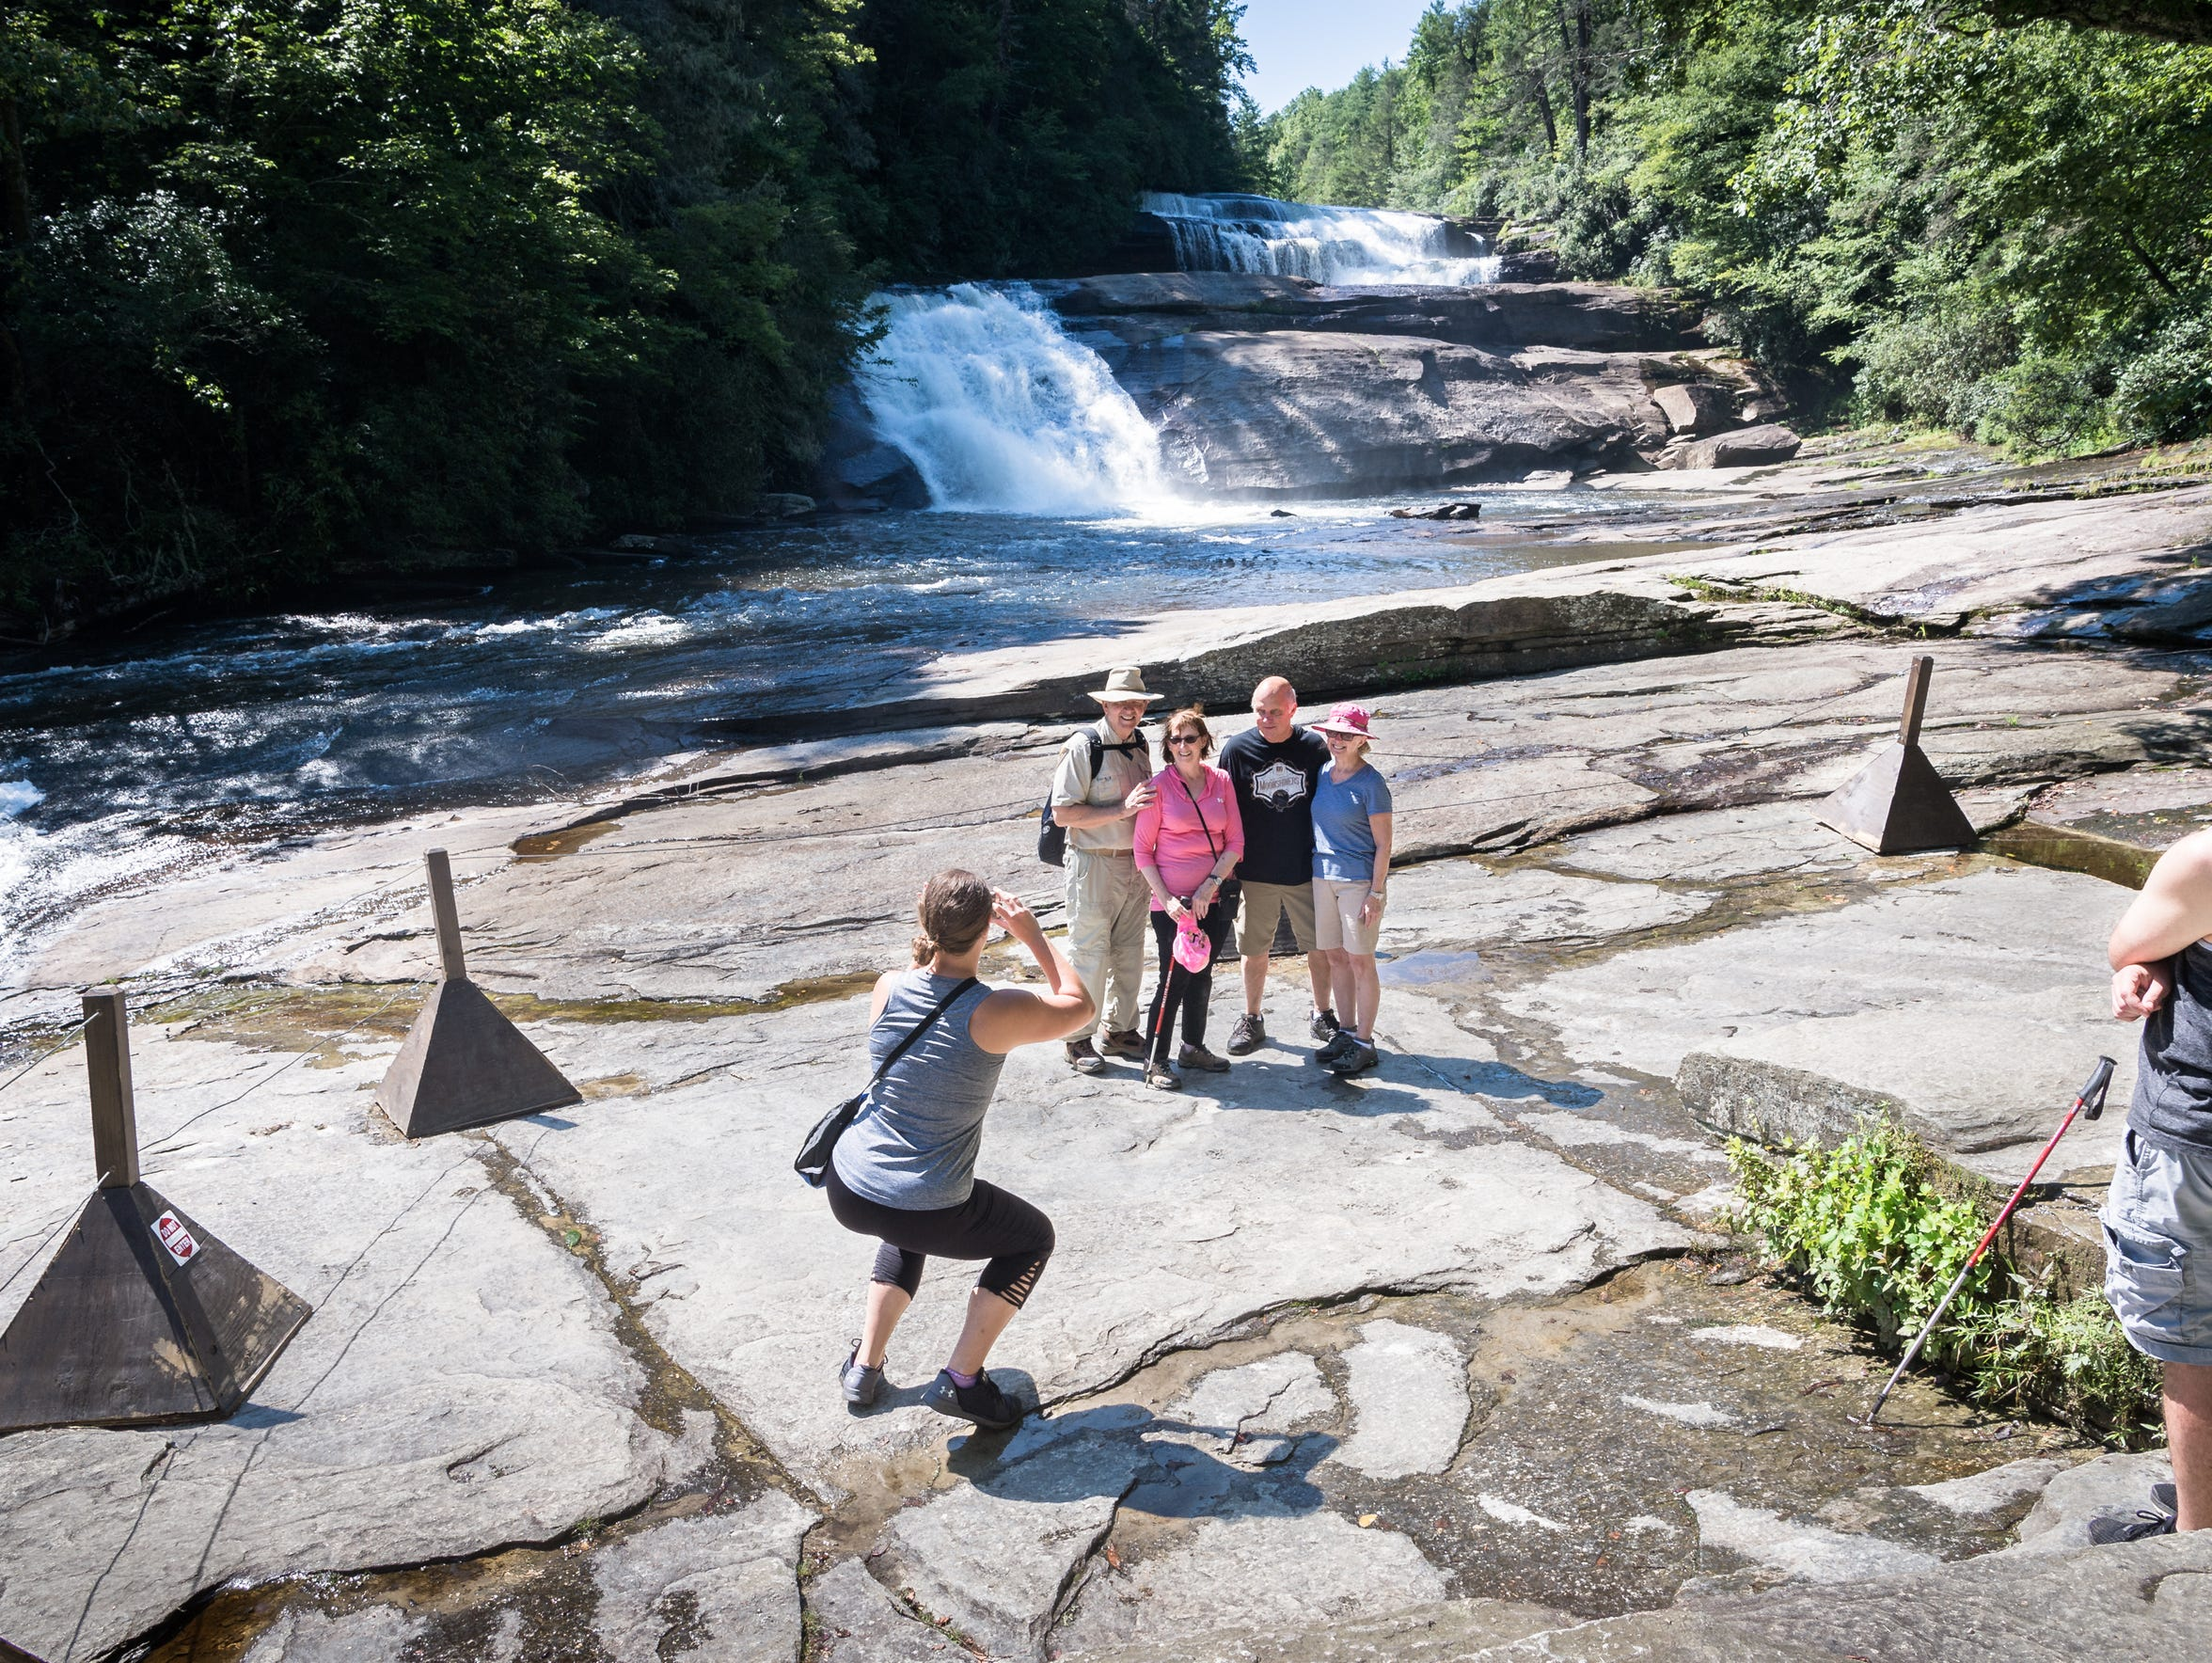 Visitors to Triple Falls in DuPont State Recreational